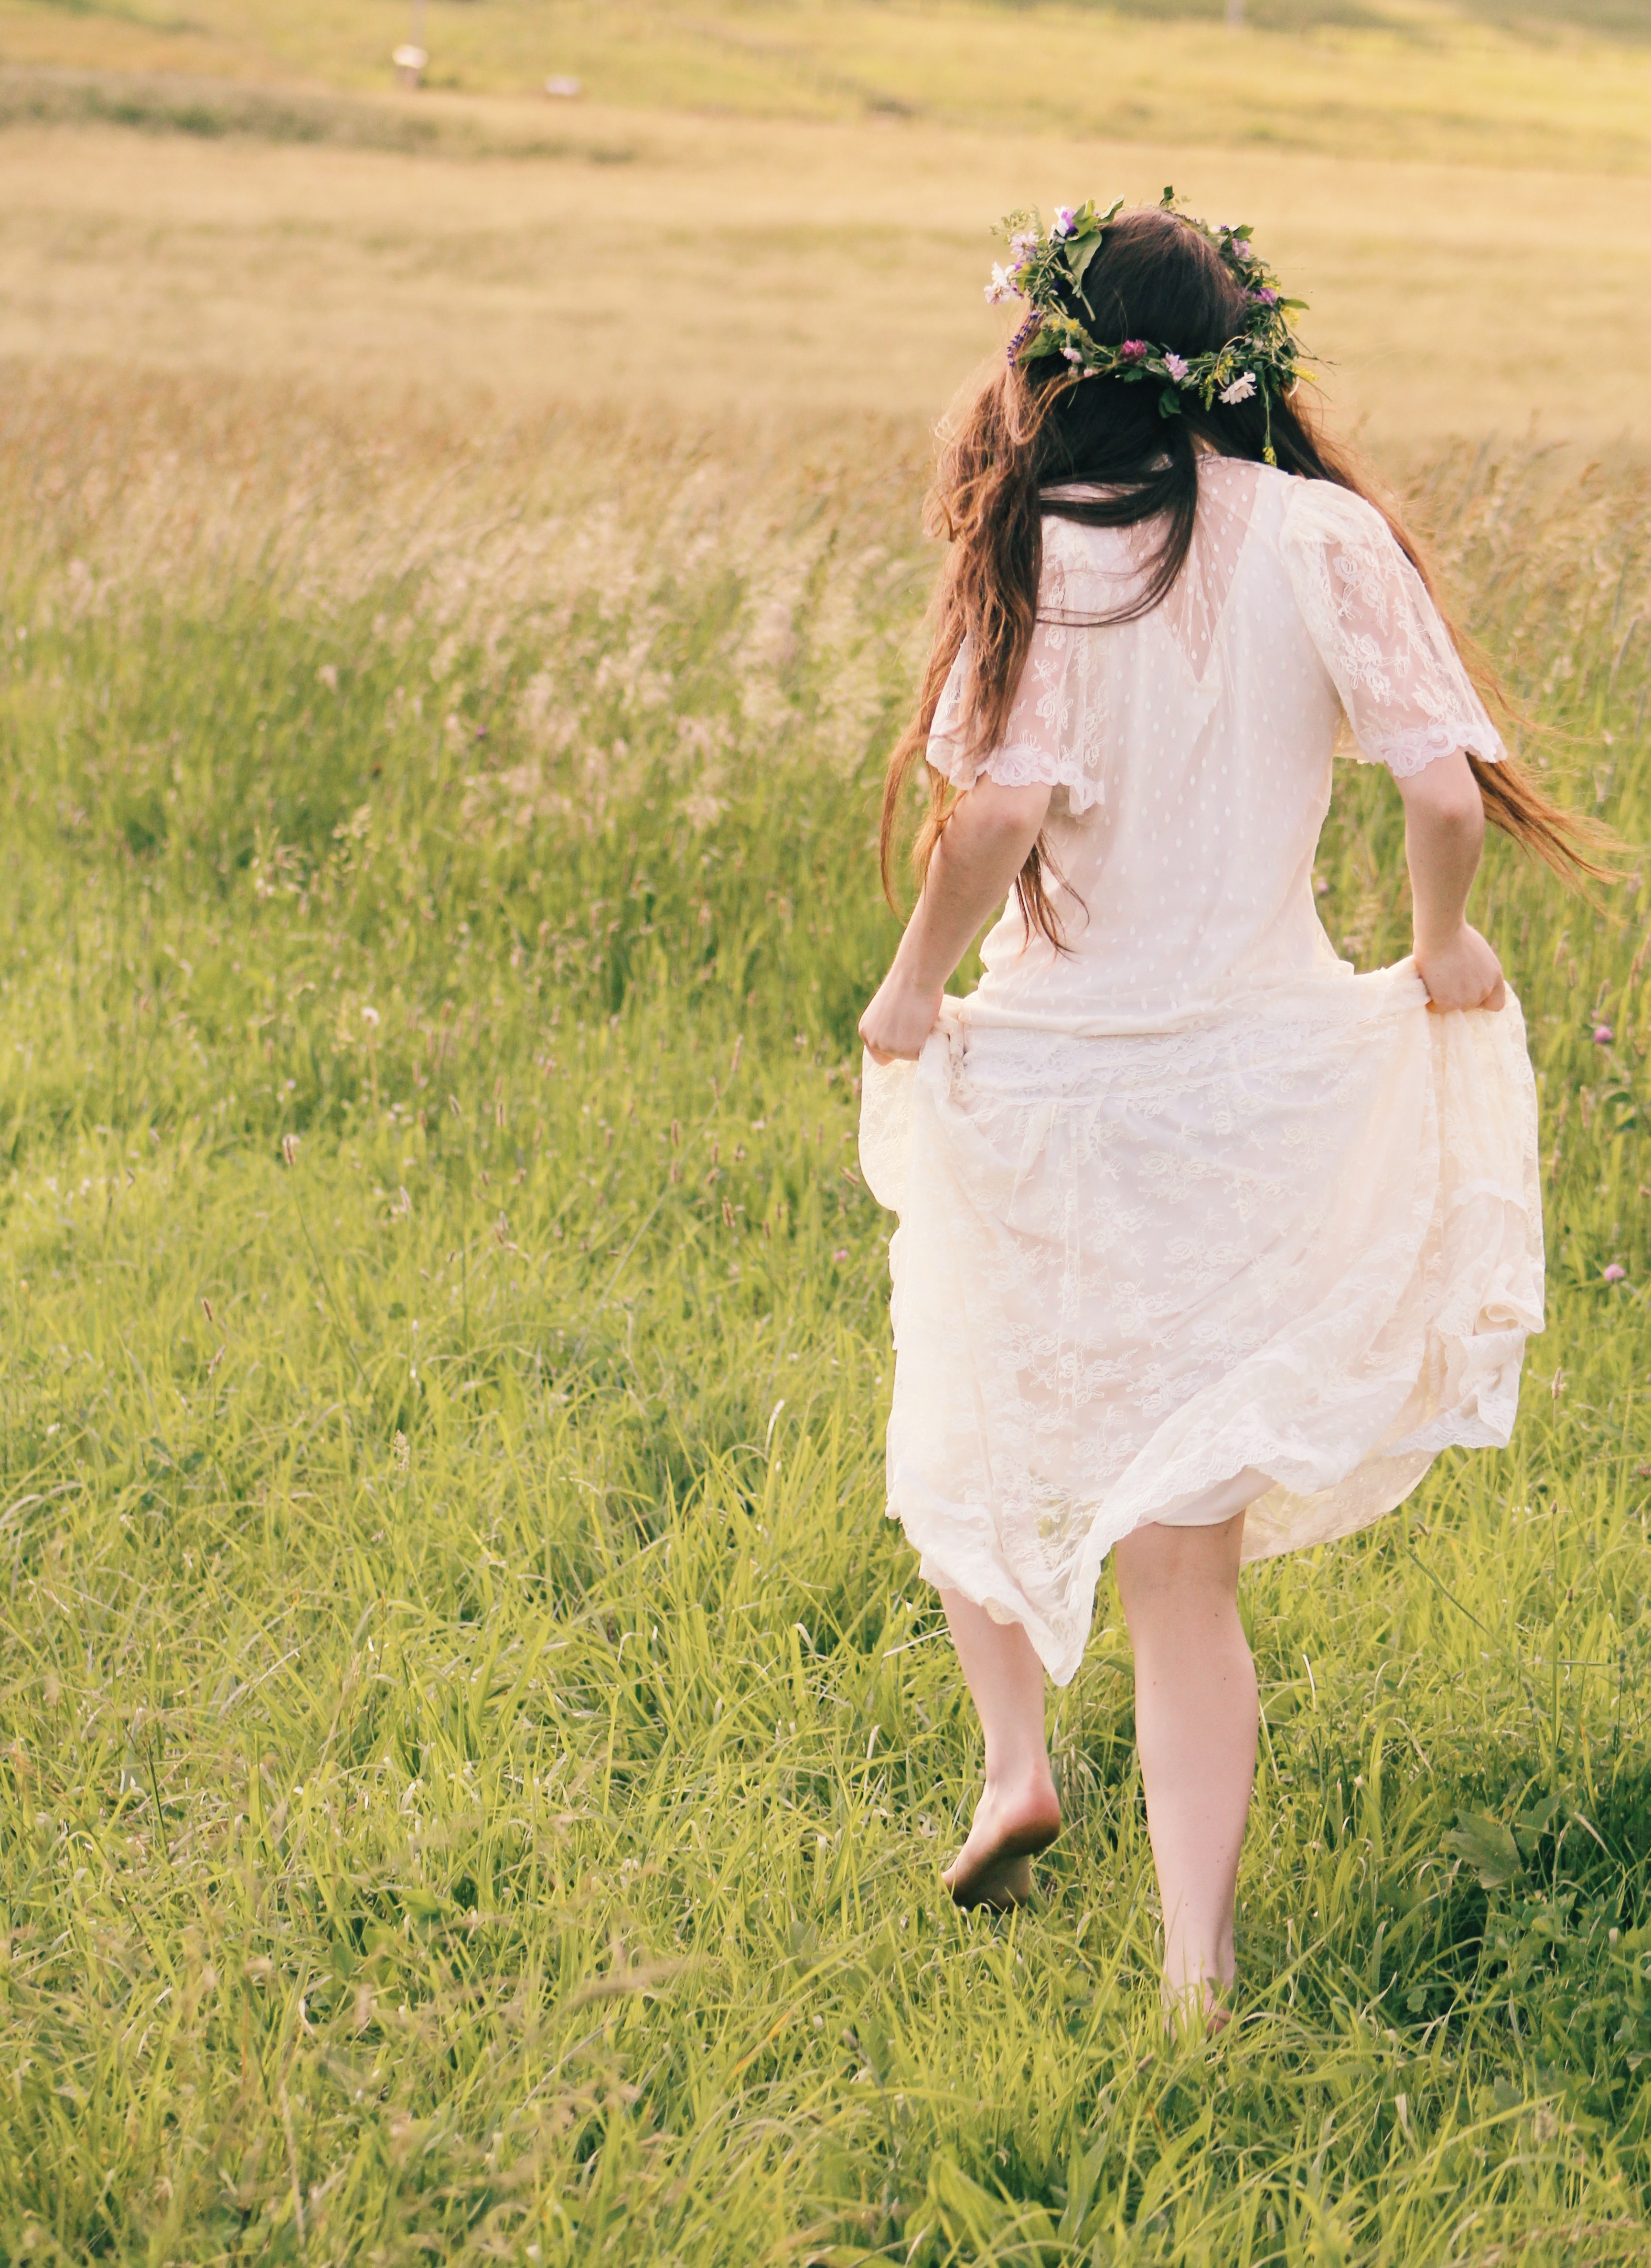 Beautiful Girl Wallpapers Free Woman Walking While Carrying Shoes And Luggage Bag During